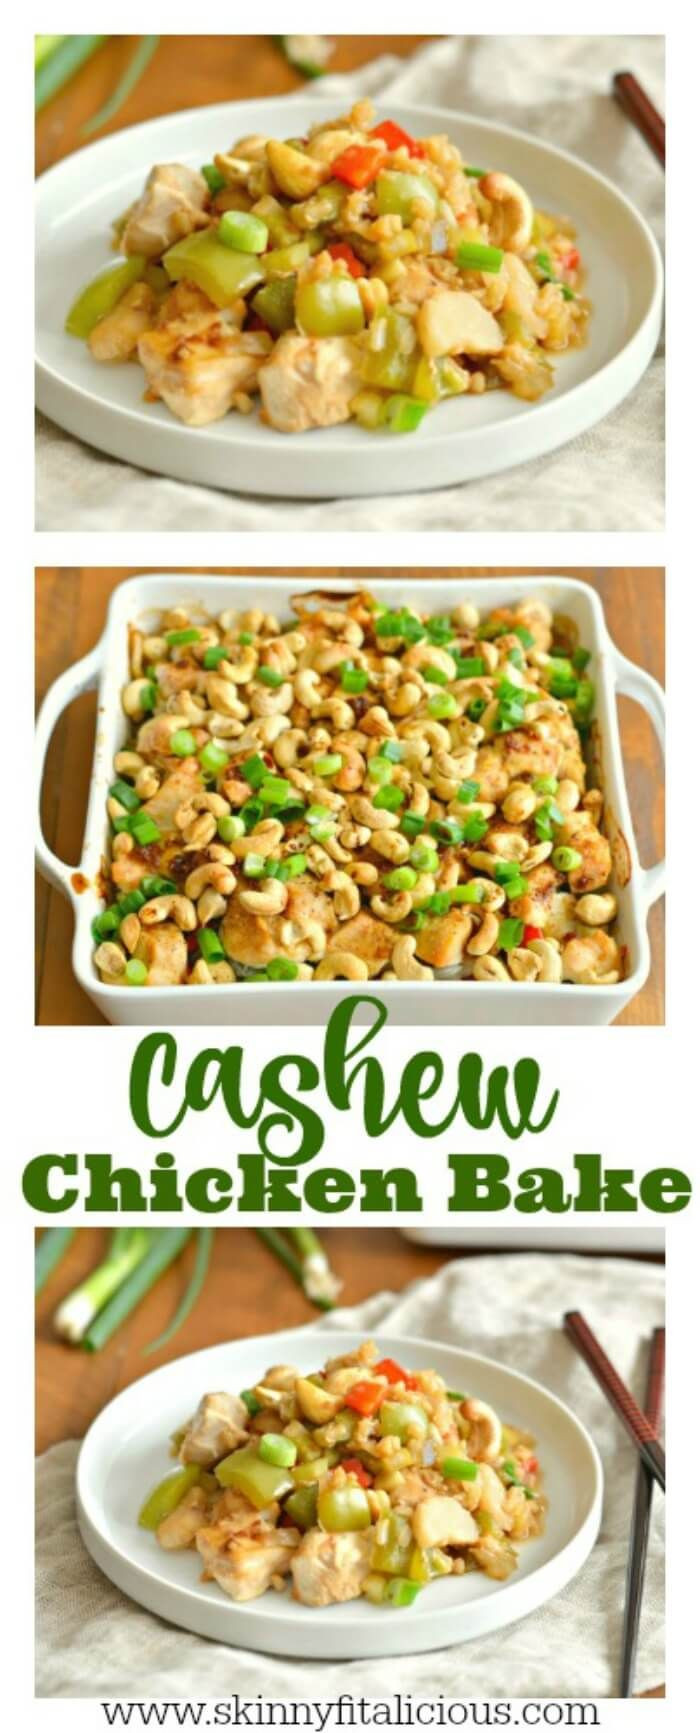 Low Calorie Recipes For Dinner  100 Low Calorie Recipes on Pinterest